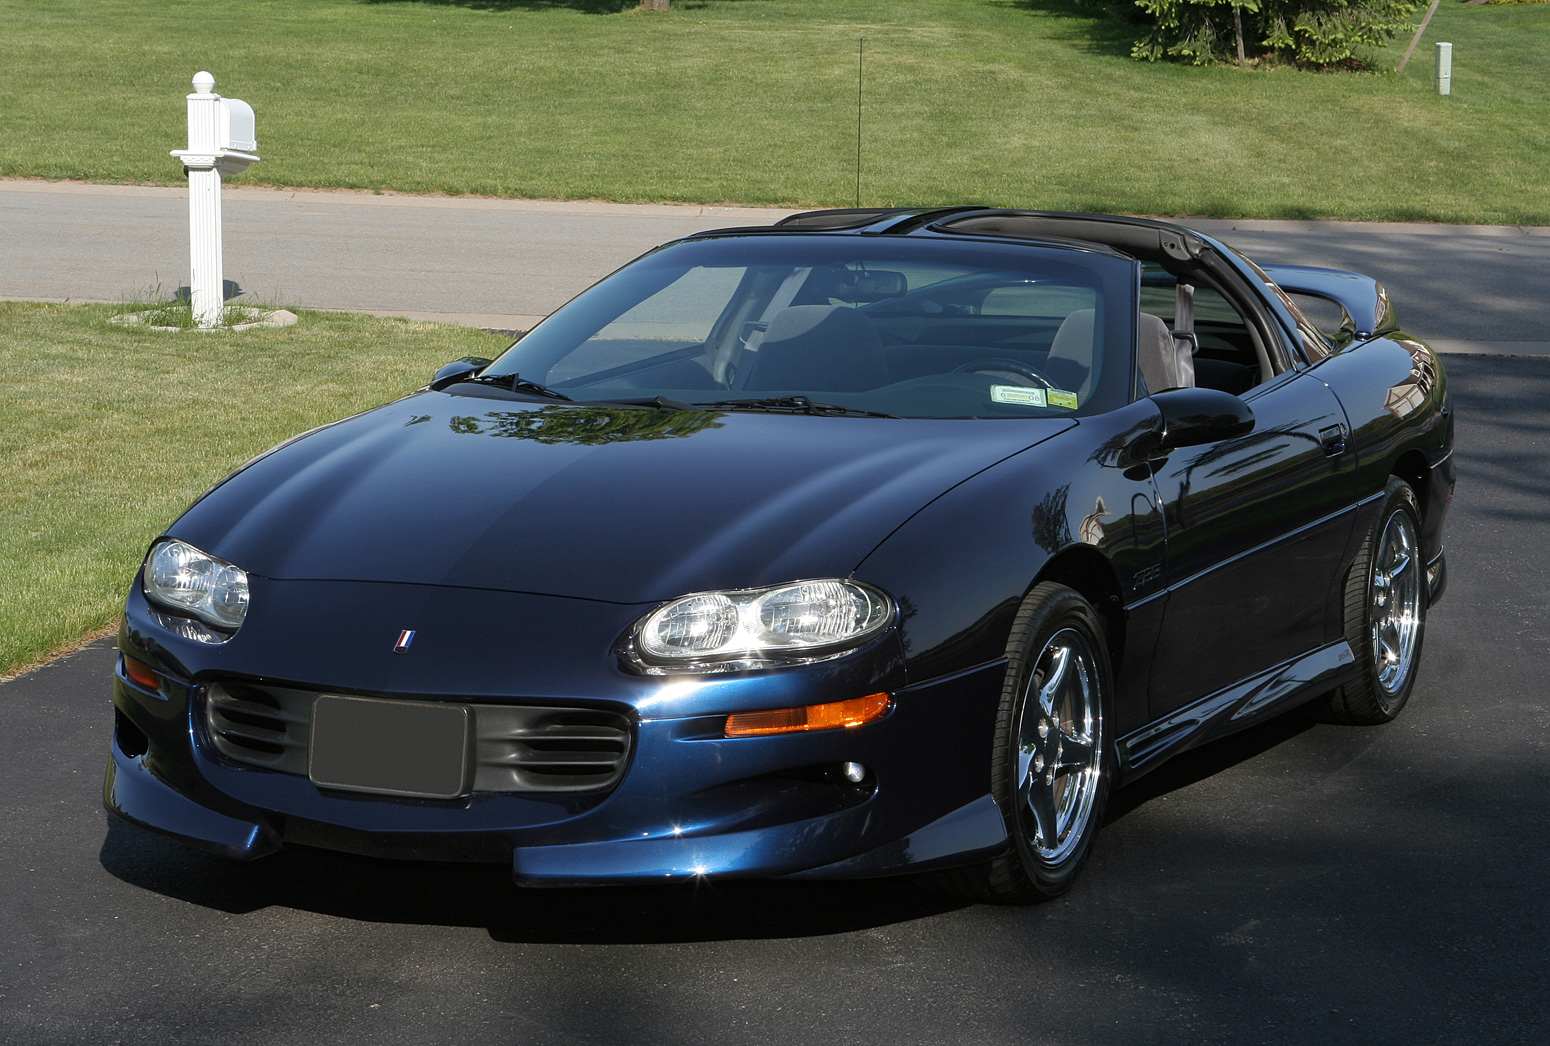 1998 camaro z28 t tops superb condition camaroz28. Black Bedroom Furniture Sets. Home Design Ideas